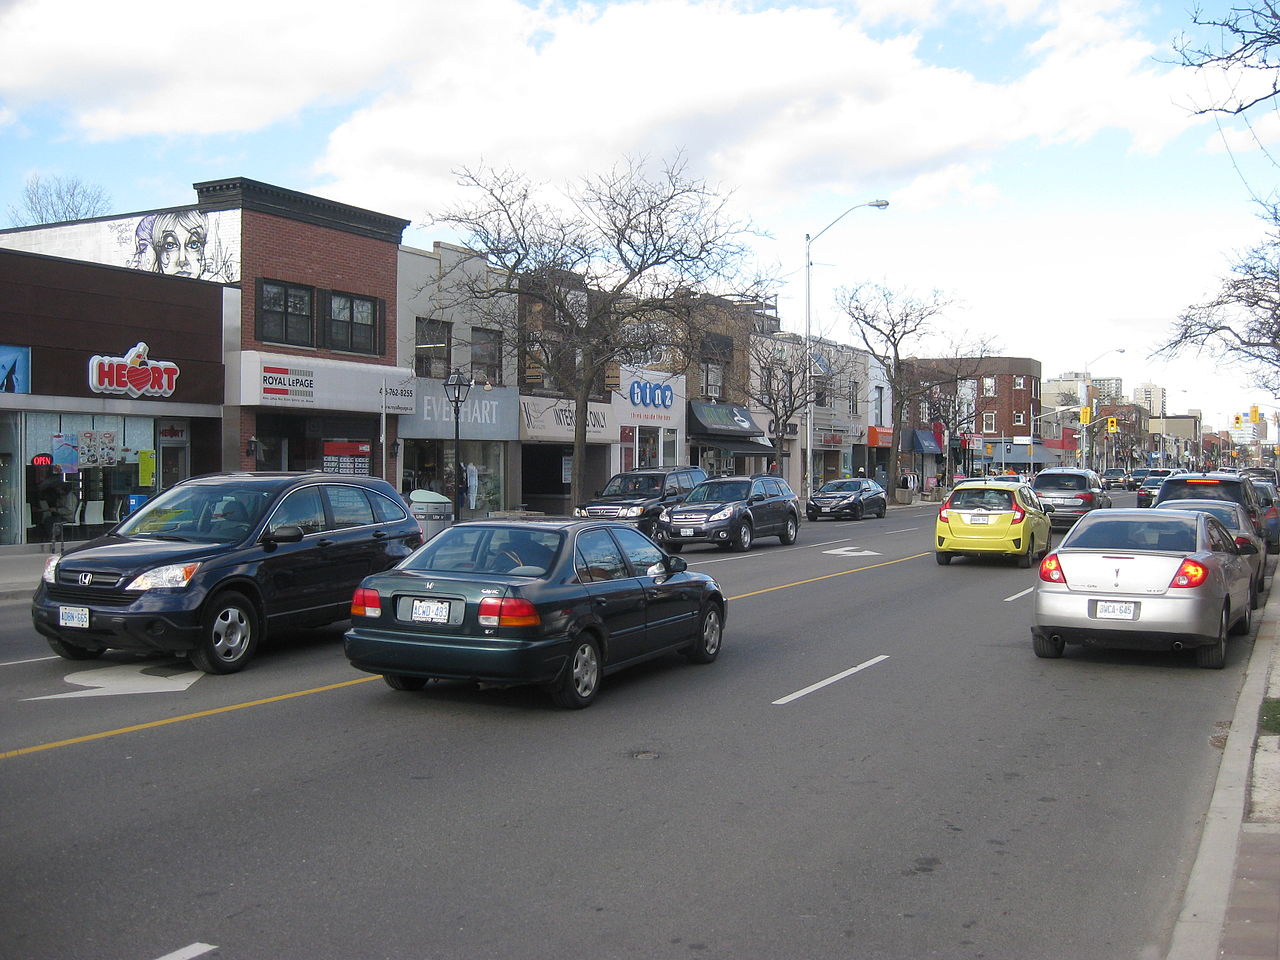 Bloor West Village shops, cars and streets.